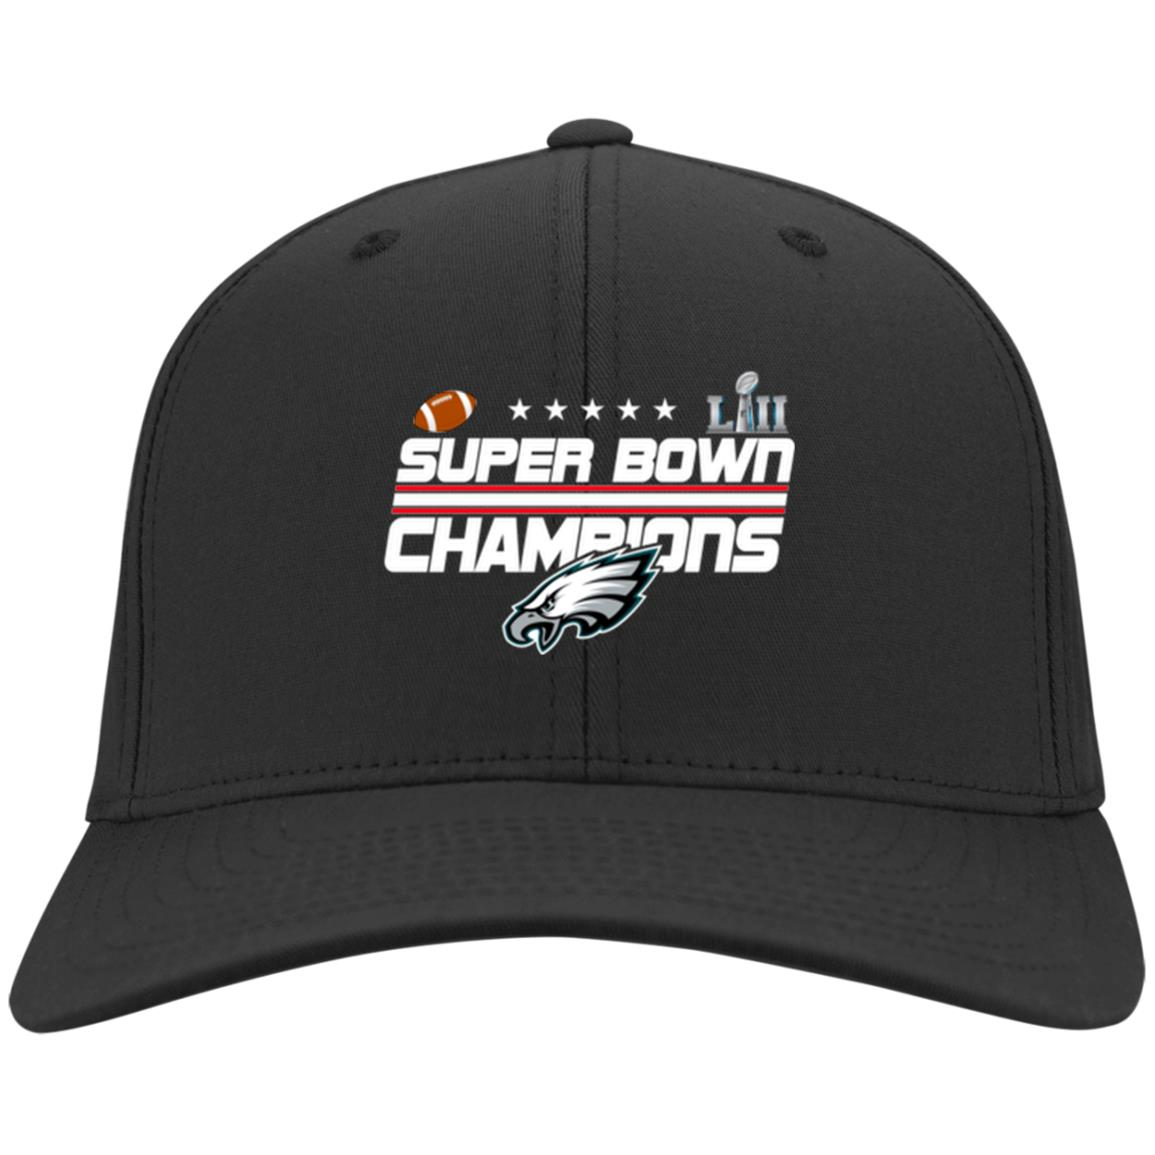 4f107e8cdab Eagles Super Bowl Champions Hats - Rockatee